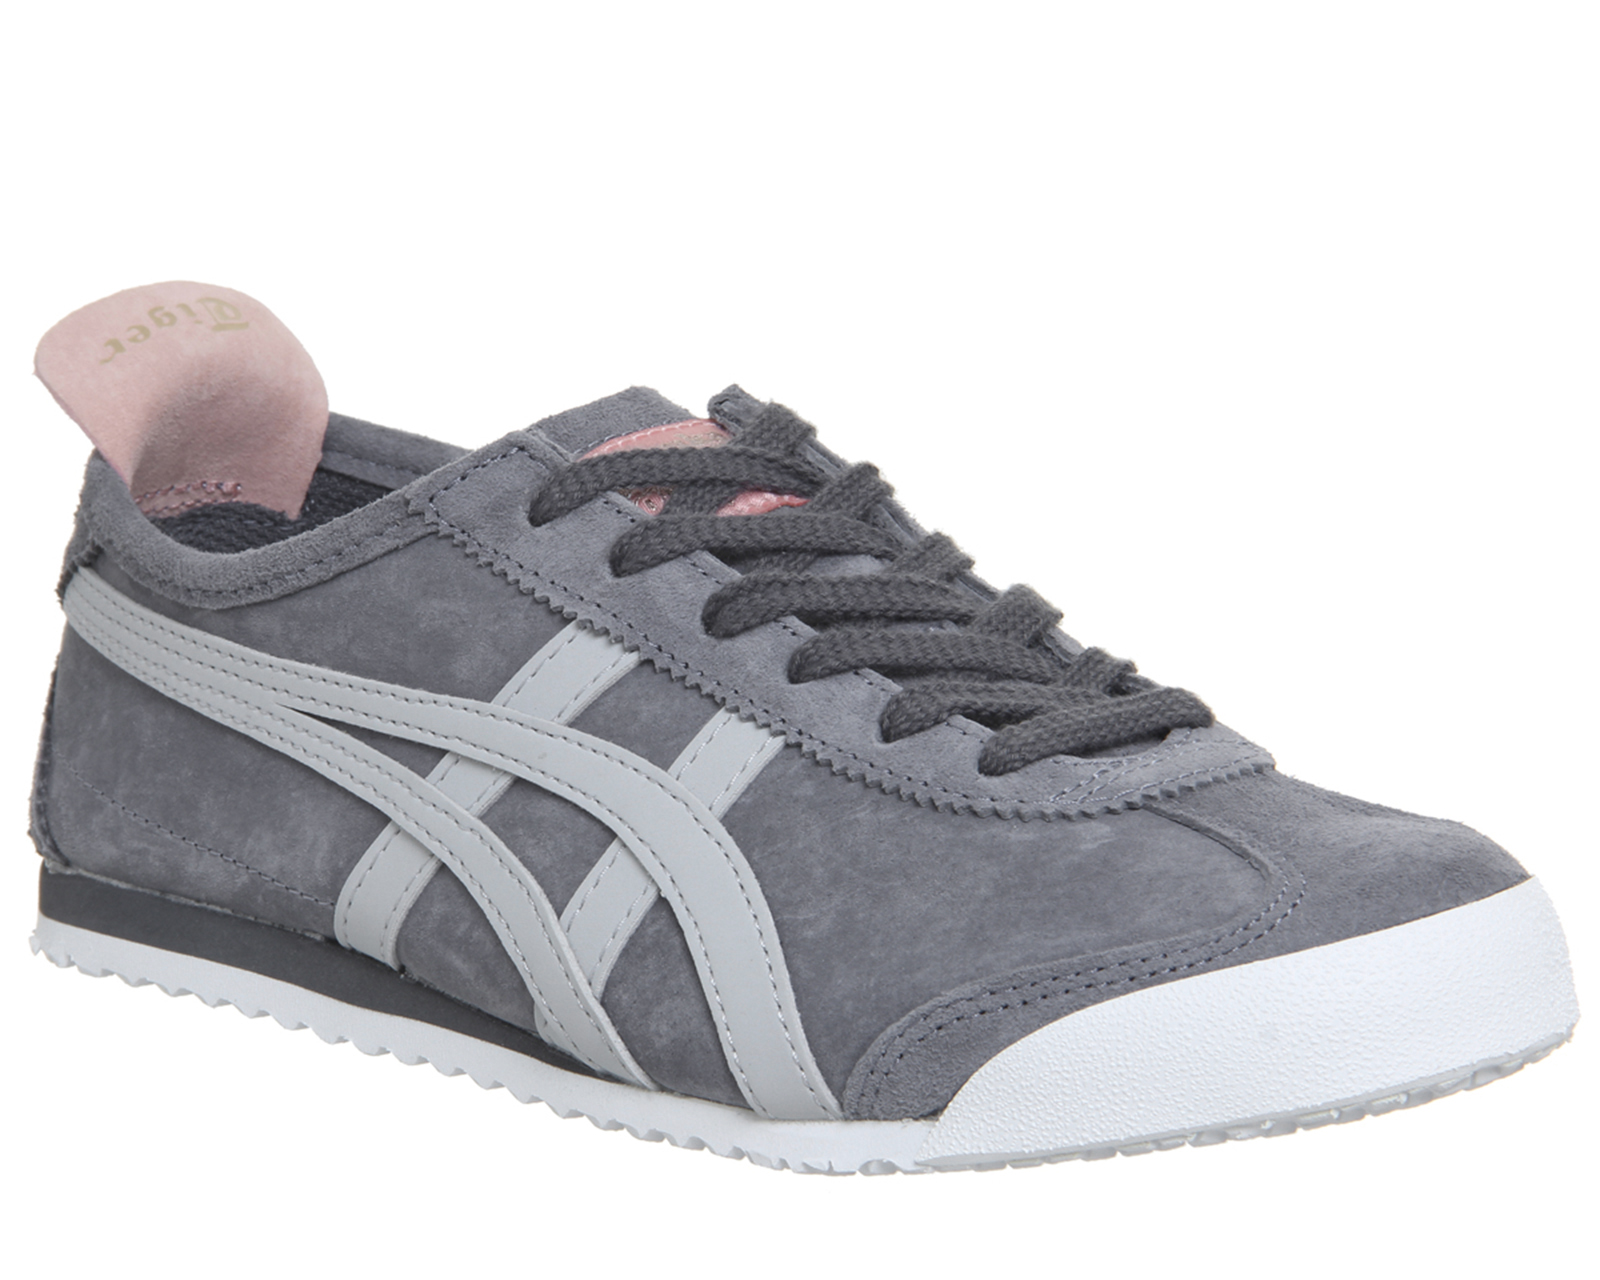 b08289b08b9a Sentinel Womens Onitsuka Tiger Mexico 66 Trainers Castlerock Highrise  Trainers Shoes